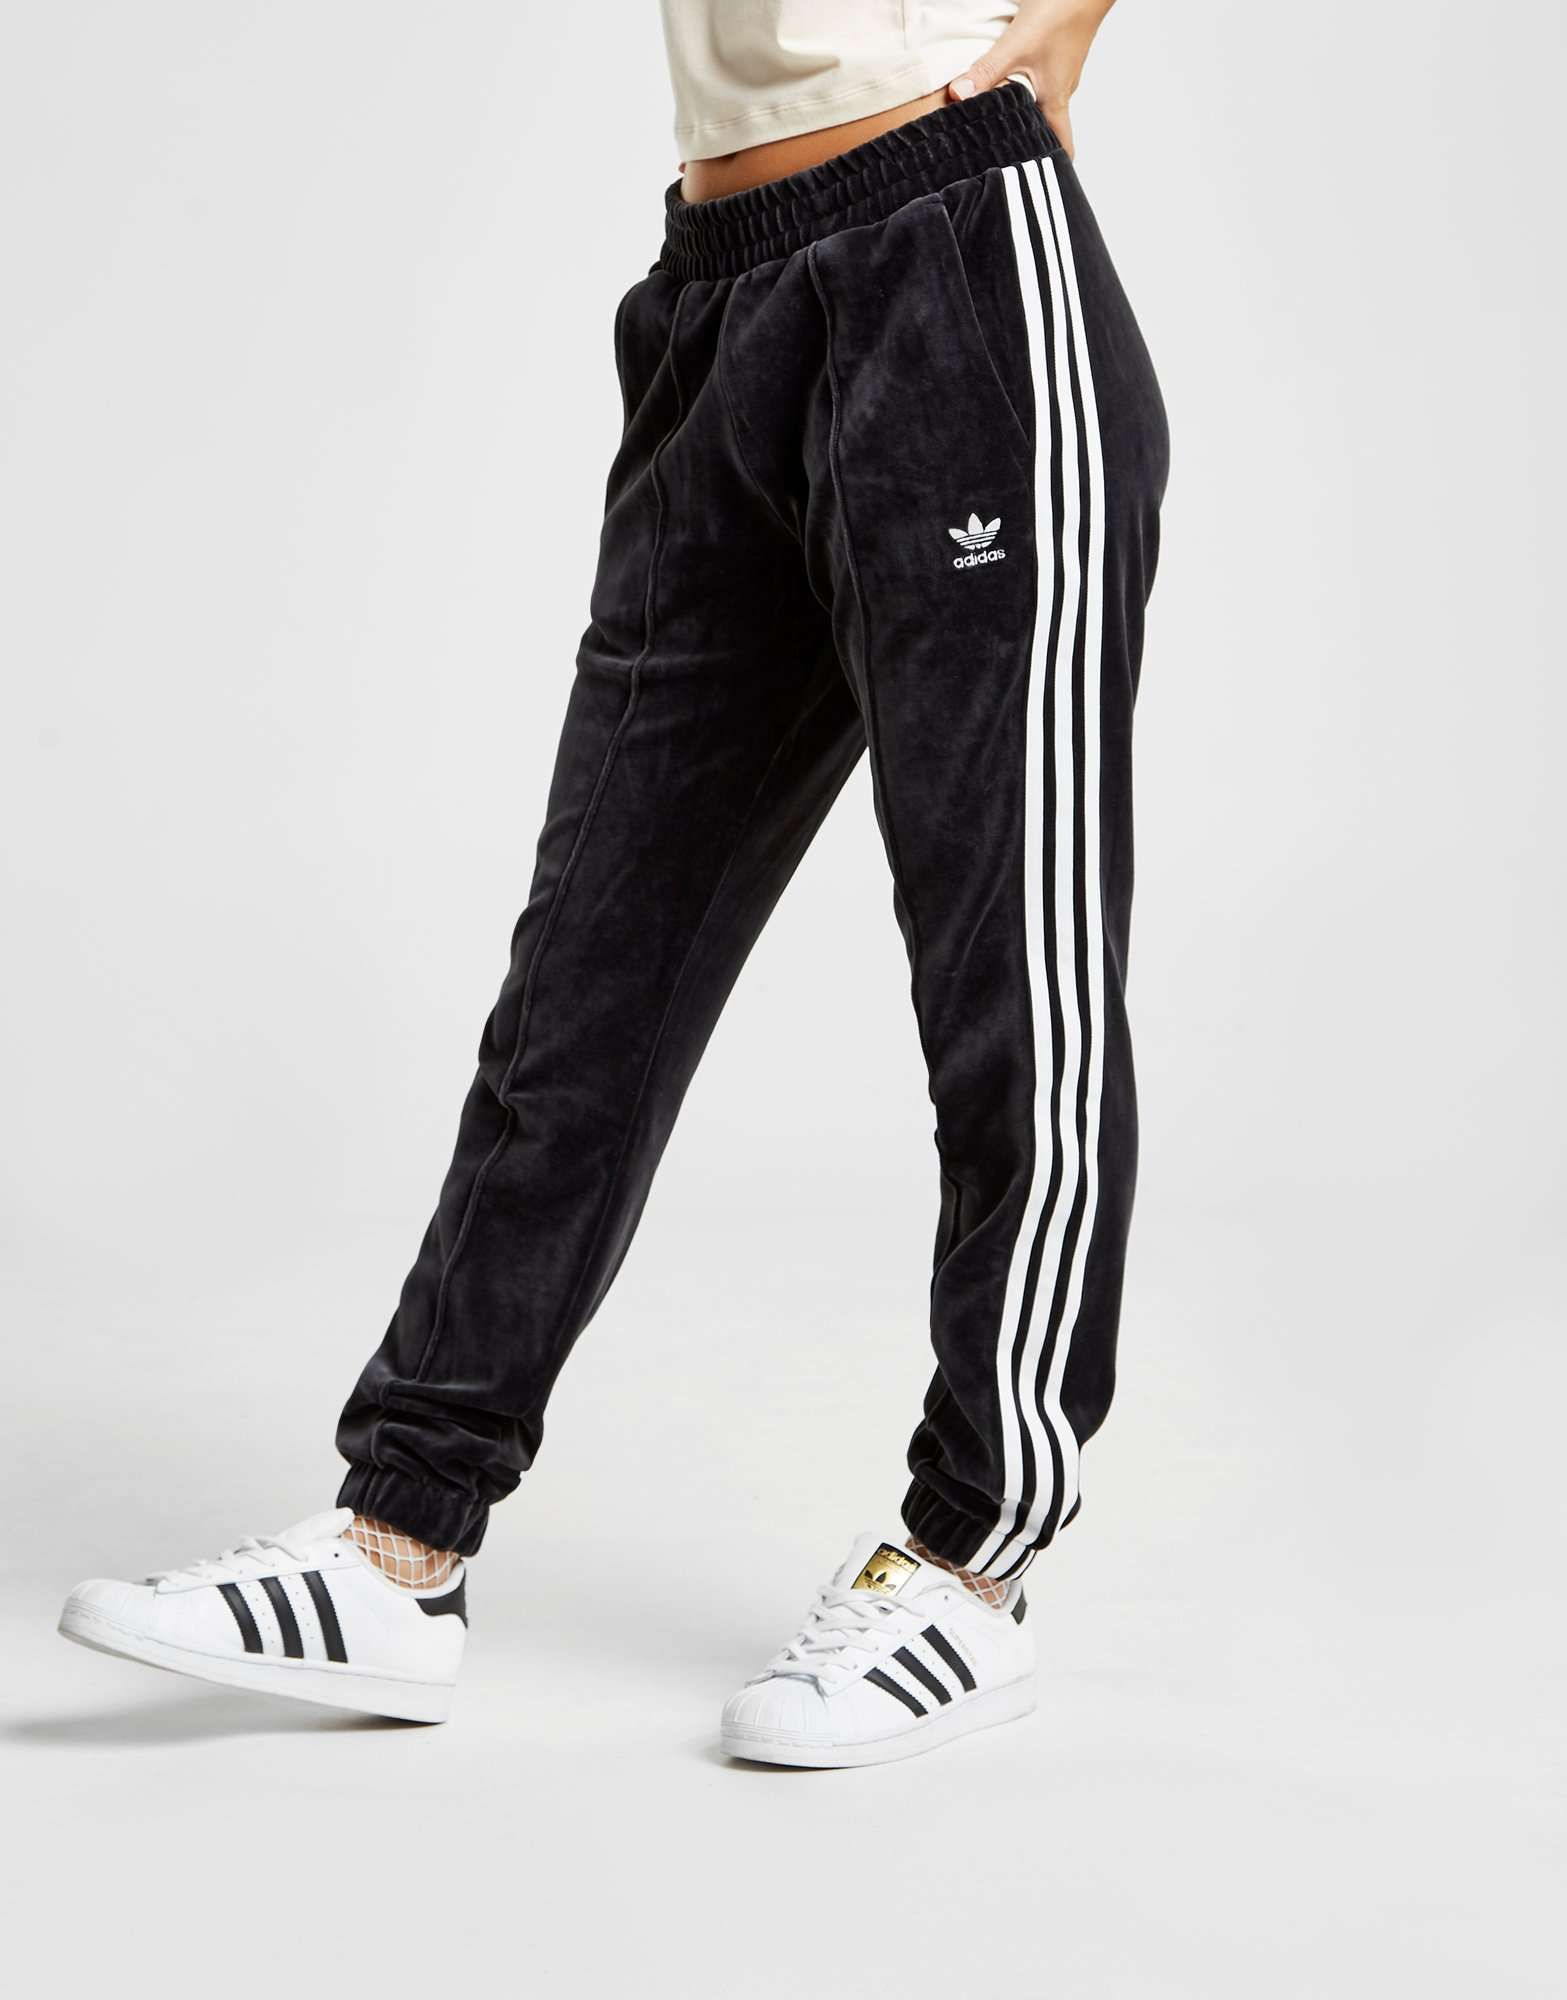 adidas Originals 3-Stripes Velvet Track Pants - Shop online ...